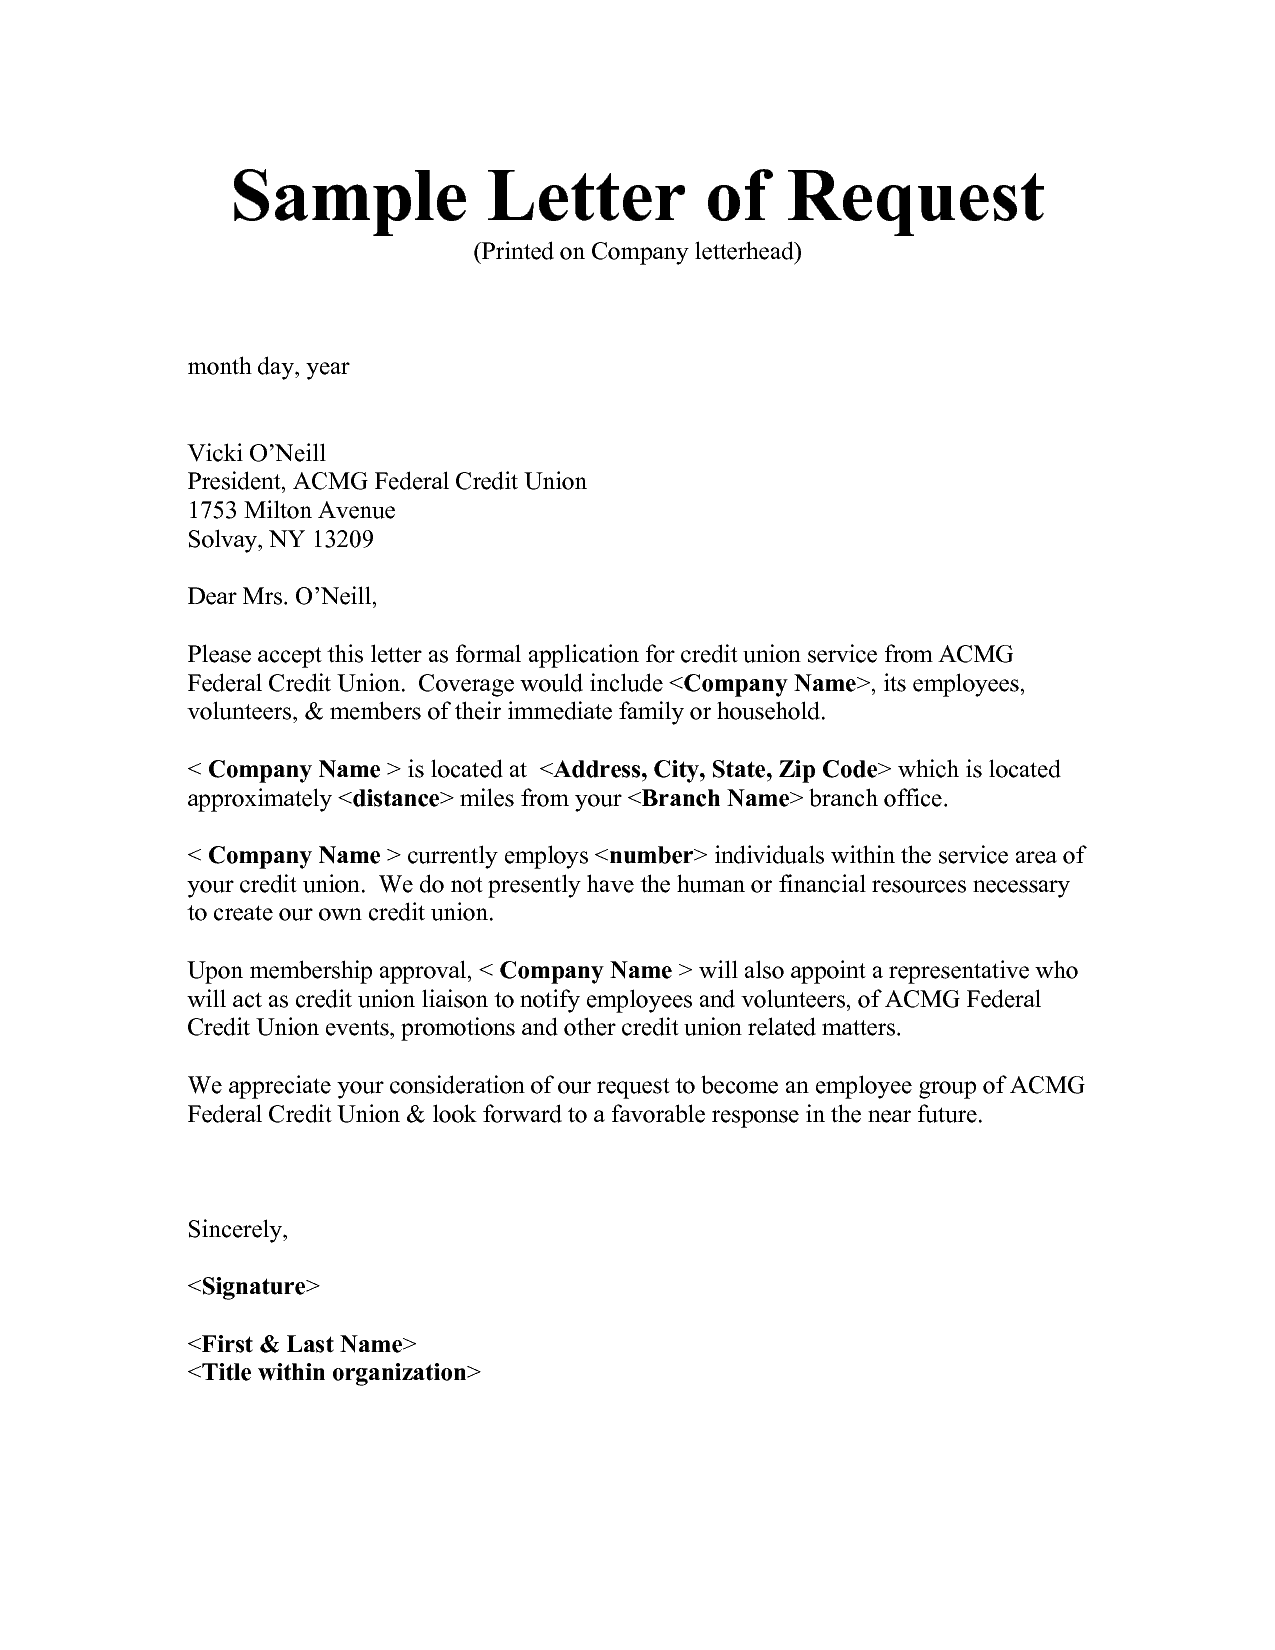 Sample request letters writing professional application letter sample request letters writing professional application letter thecheapjerseys Image collections